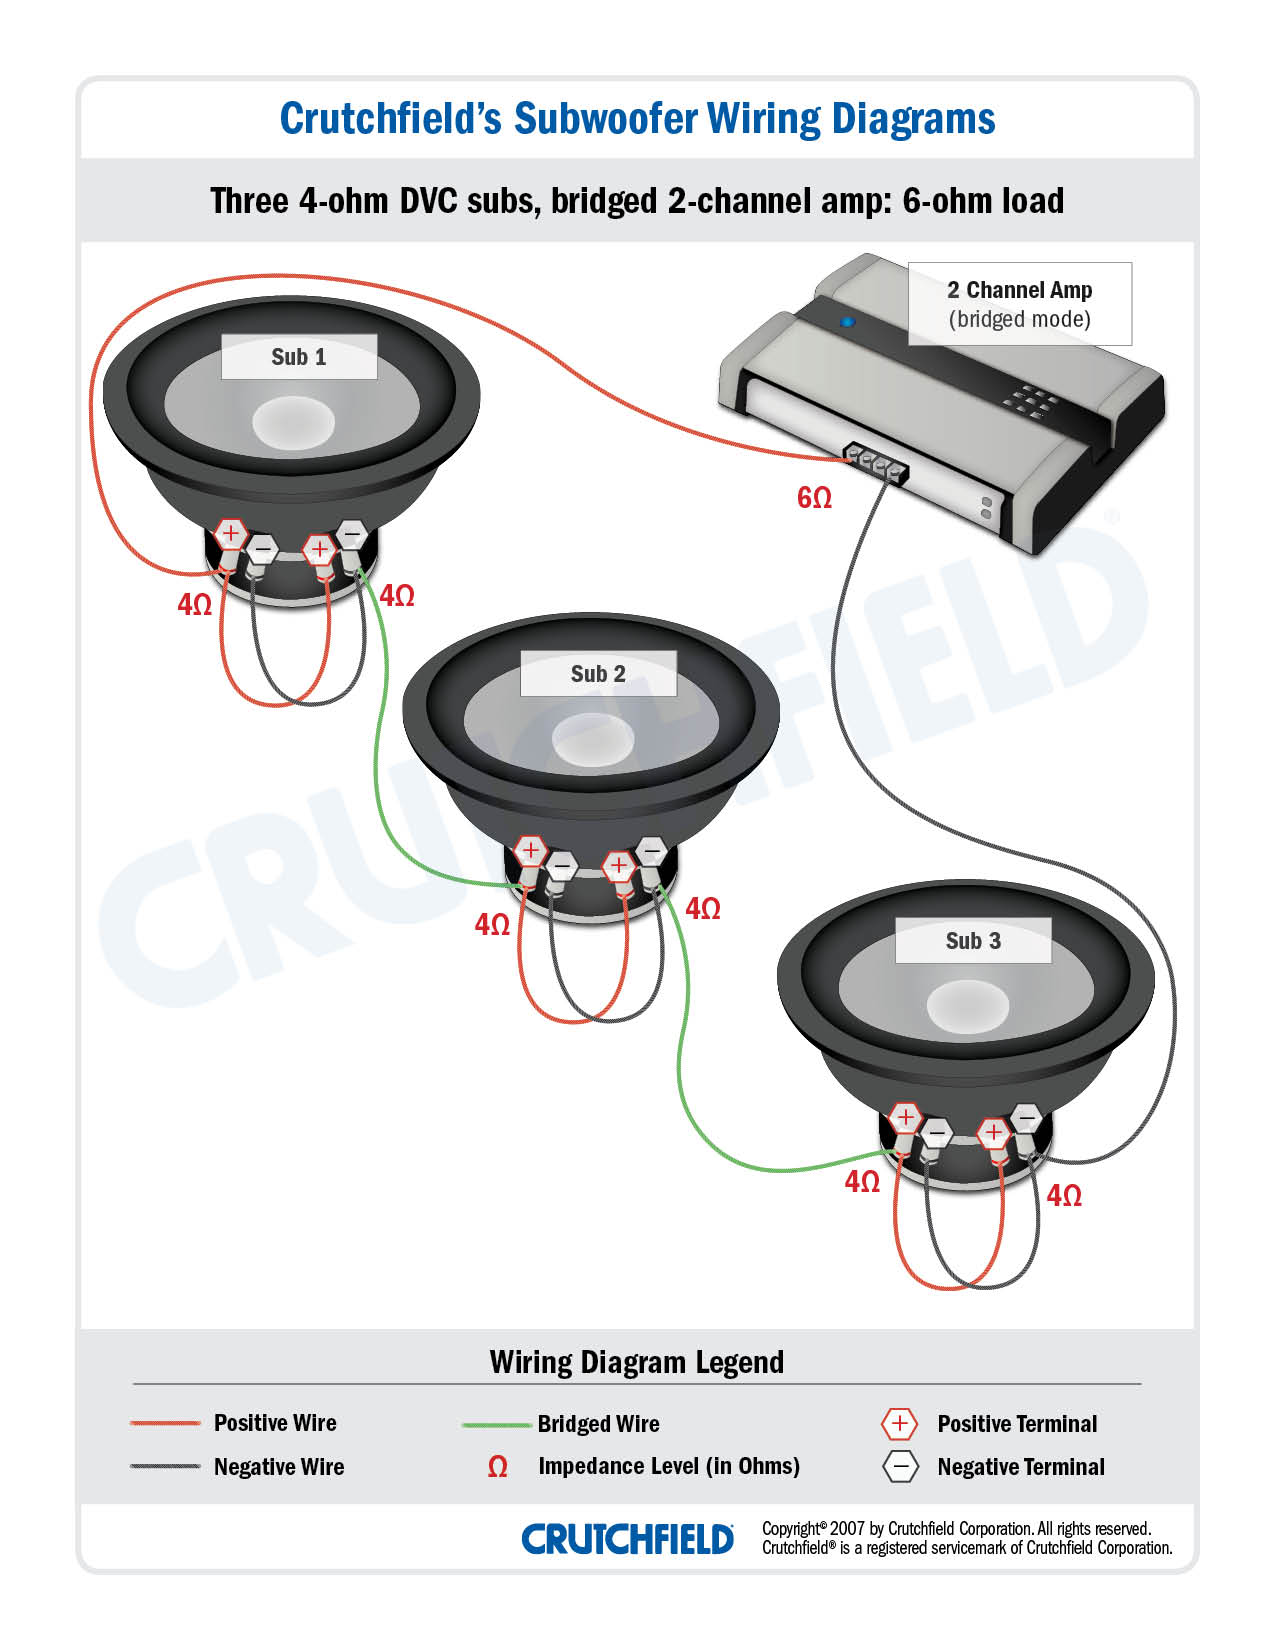 3 DVC 4 ohm 2 ch subwoofer wiring diagrams speaker wiring diagram at edmiracle.co